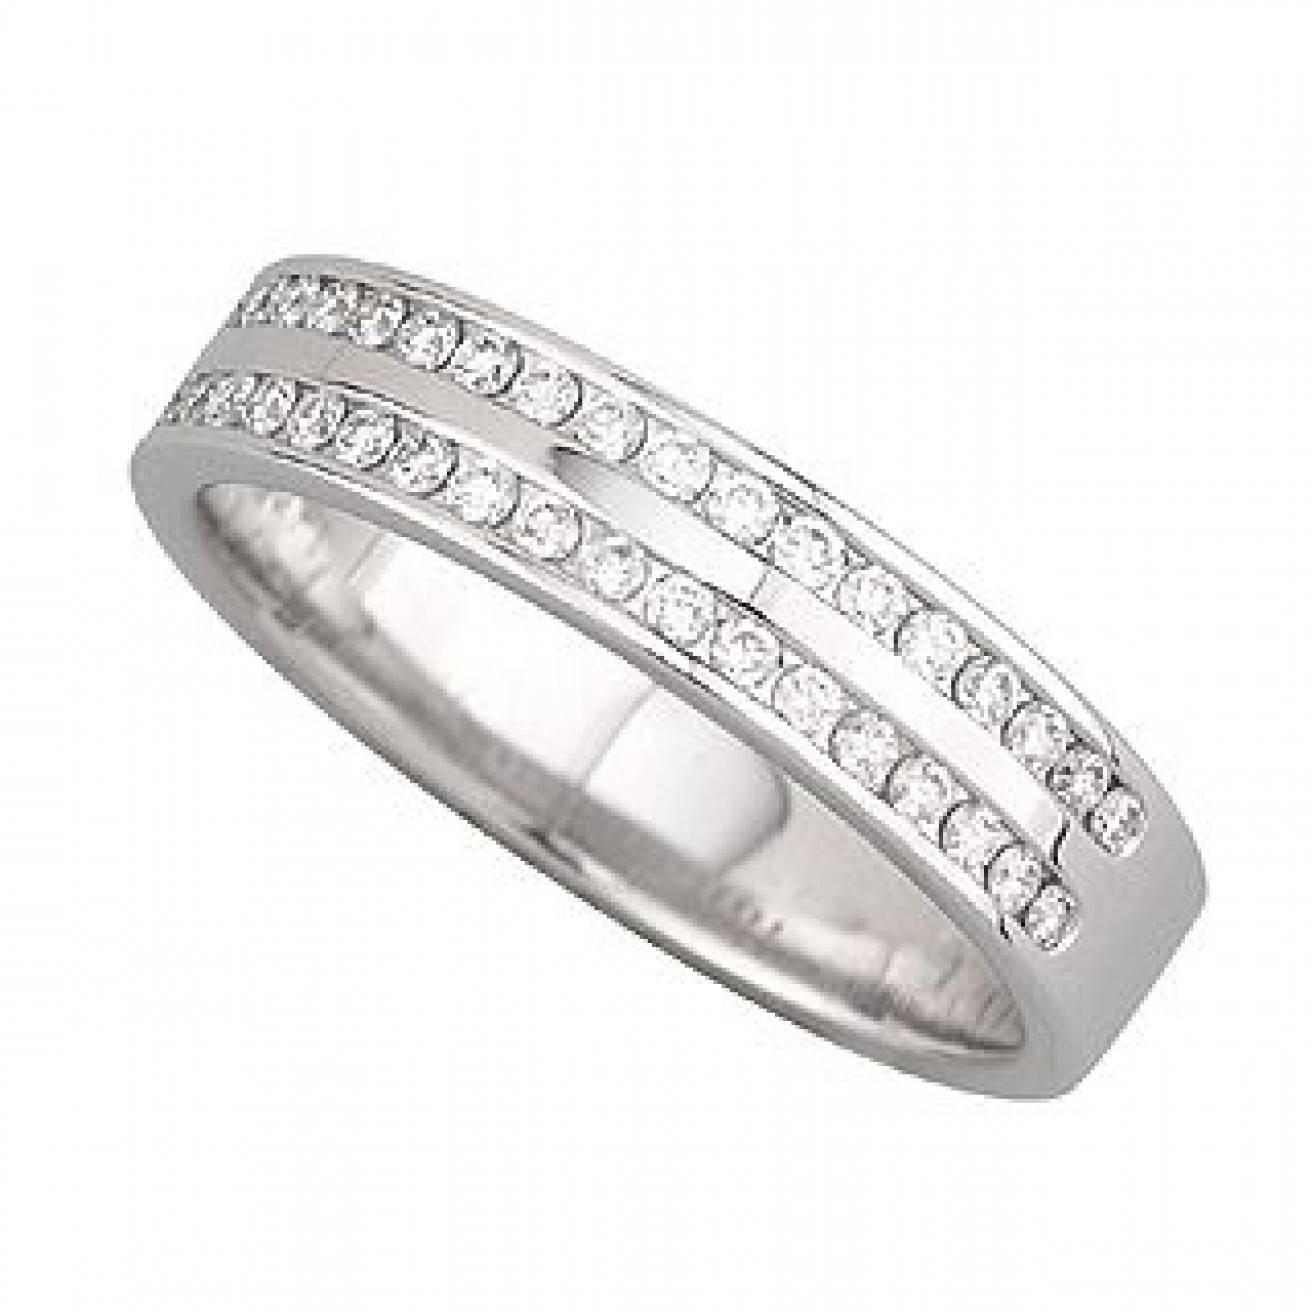 Buy Platinum Wedding Bands Online Fraser Hart Inside And Diamond Rings Gallery